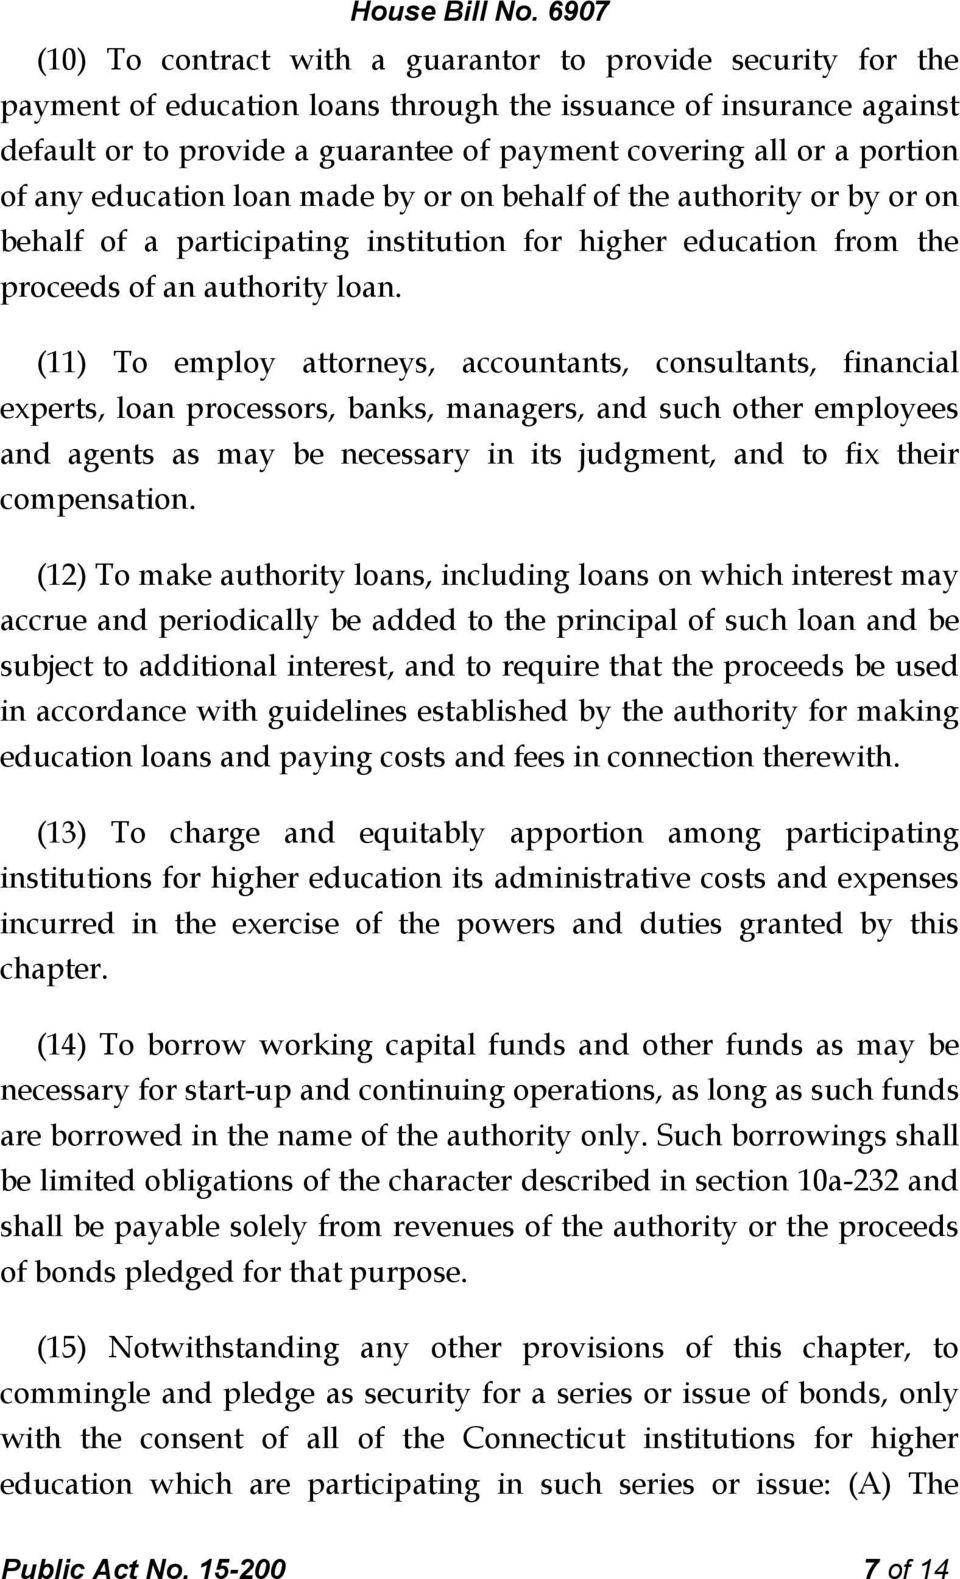 (11) To employ attorneys, accountants, consultants, financial experts, loan processors, banks, managers, and such other employees and agents as may be necessary in its judgment, and to fix their